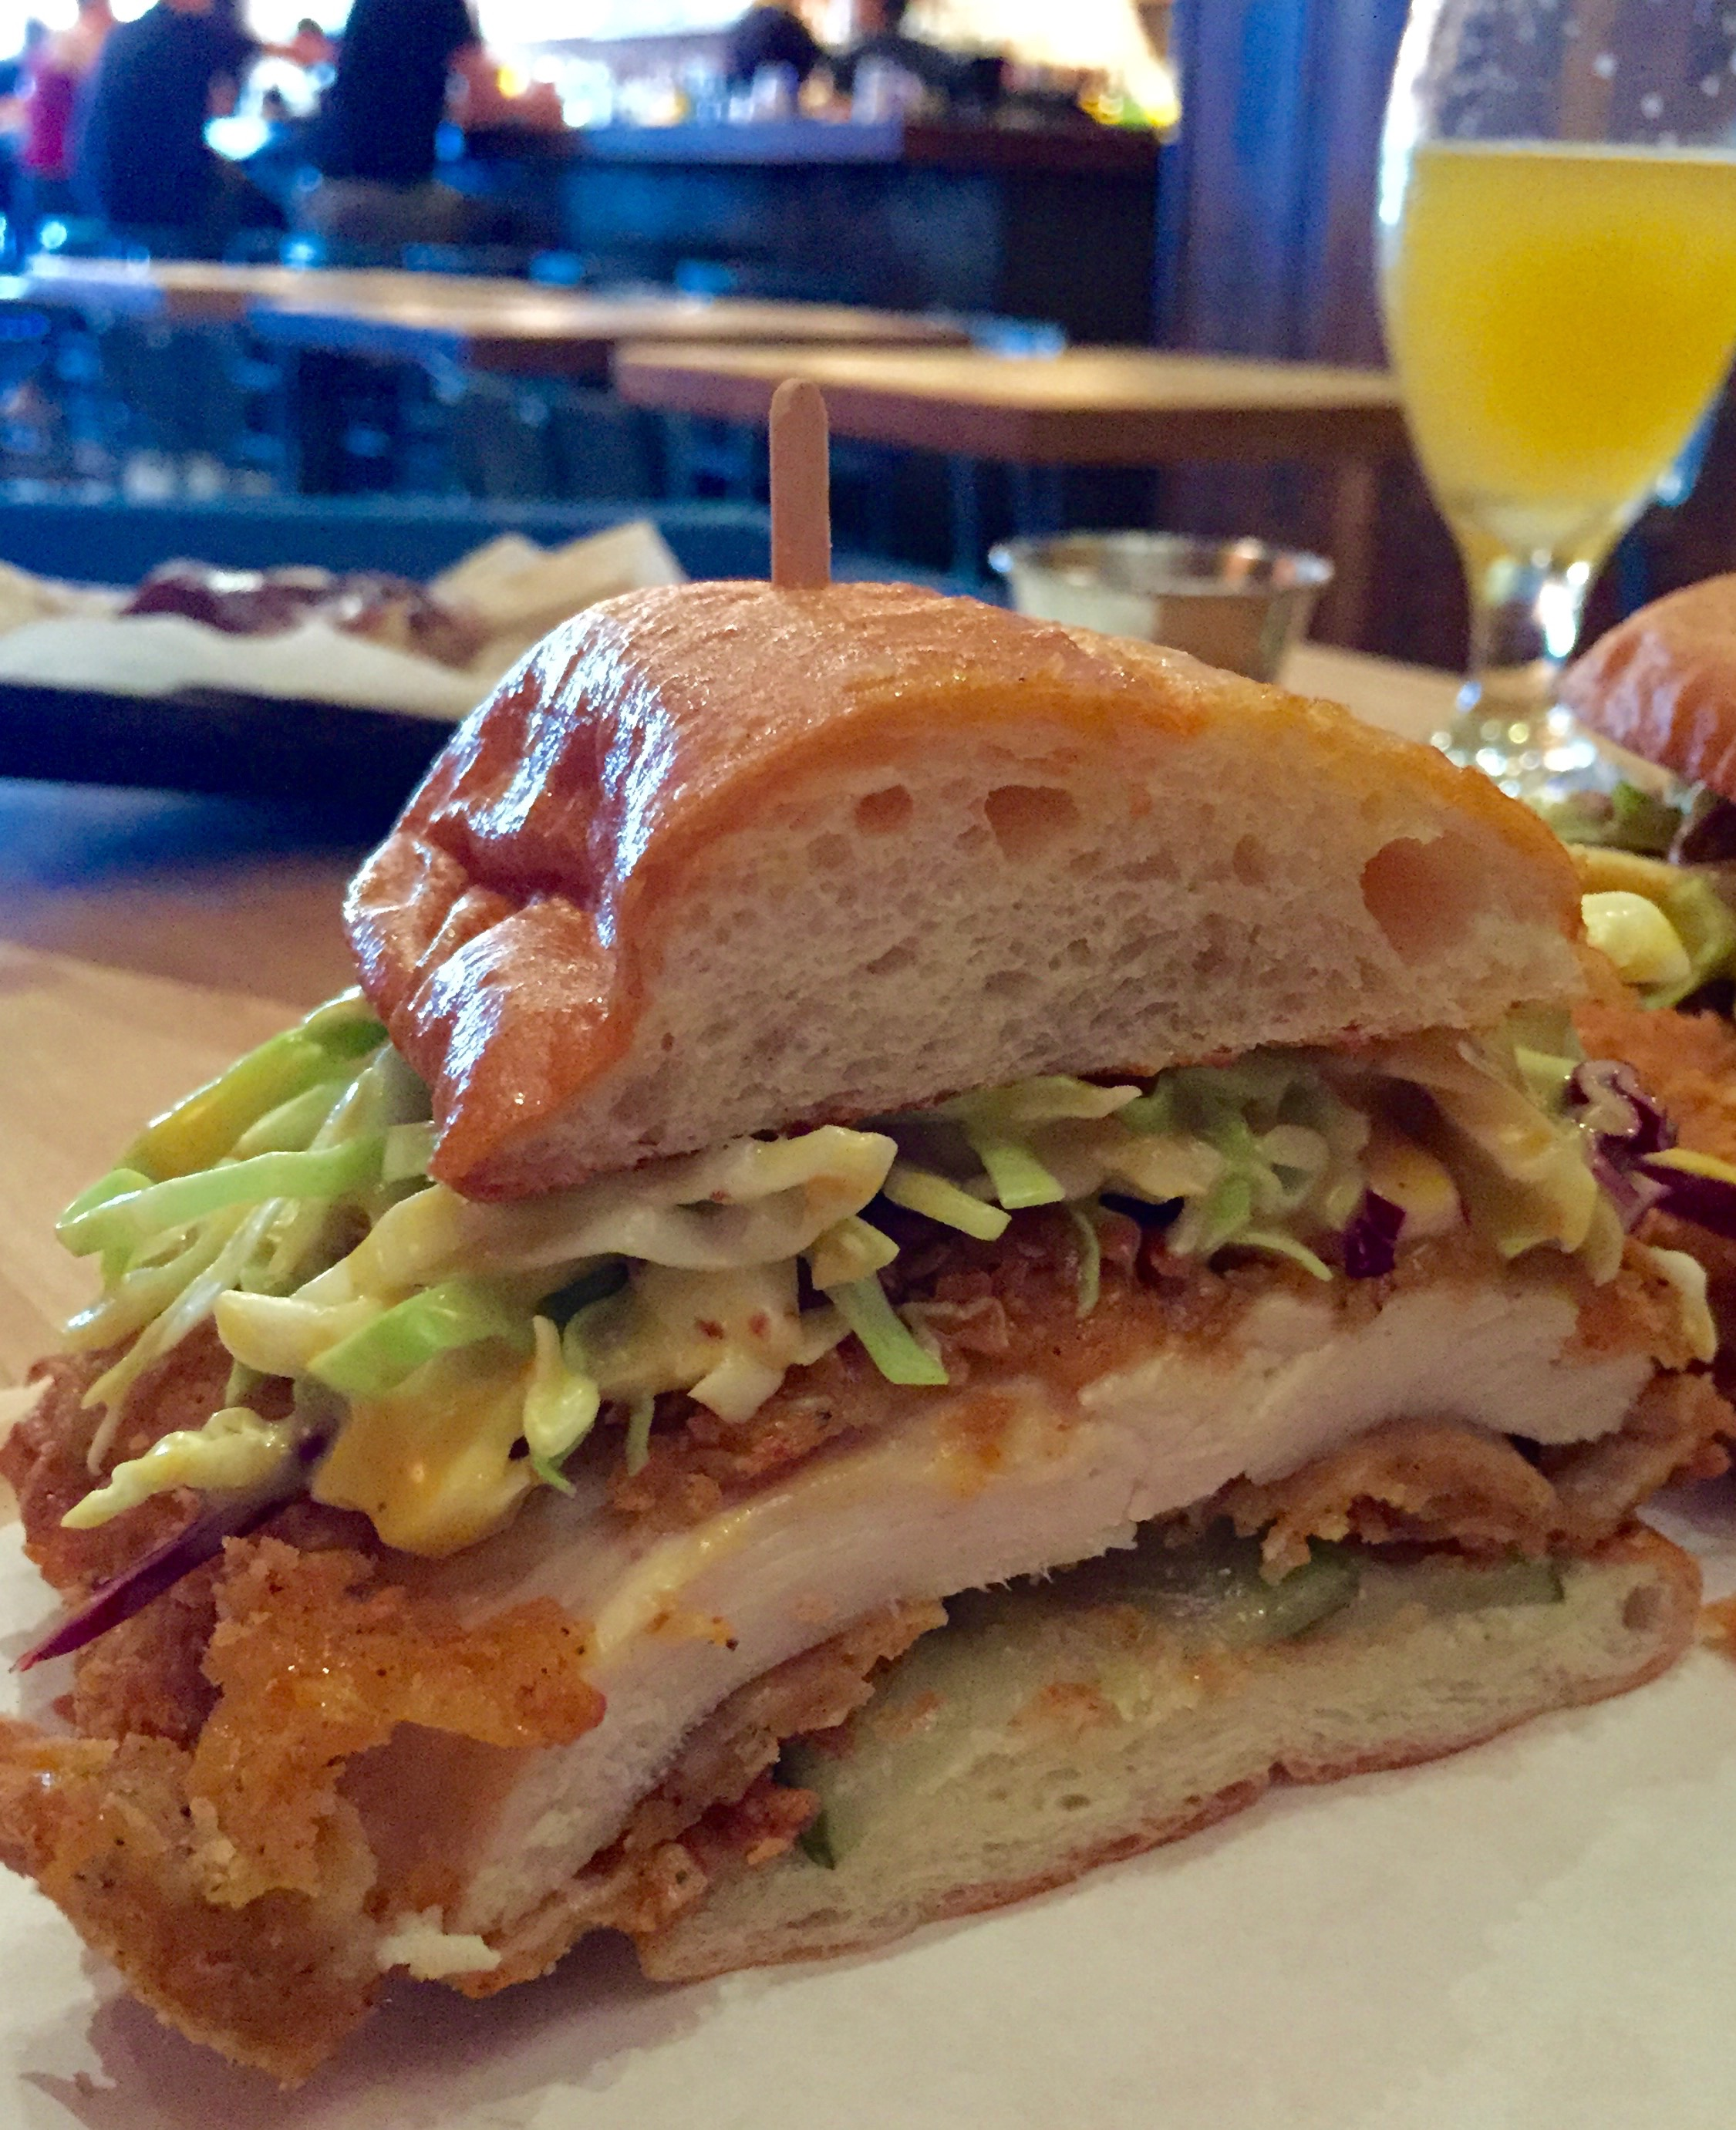 Crispy Chicken Sandwich with chicken breast, cabbage slaw, dill pickles on a sweet roll.